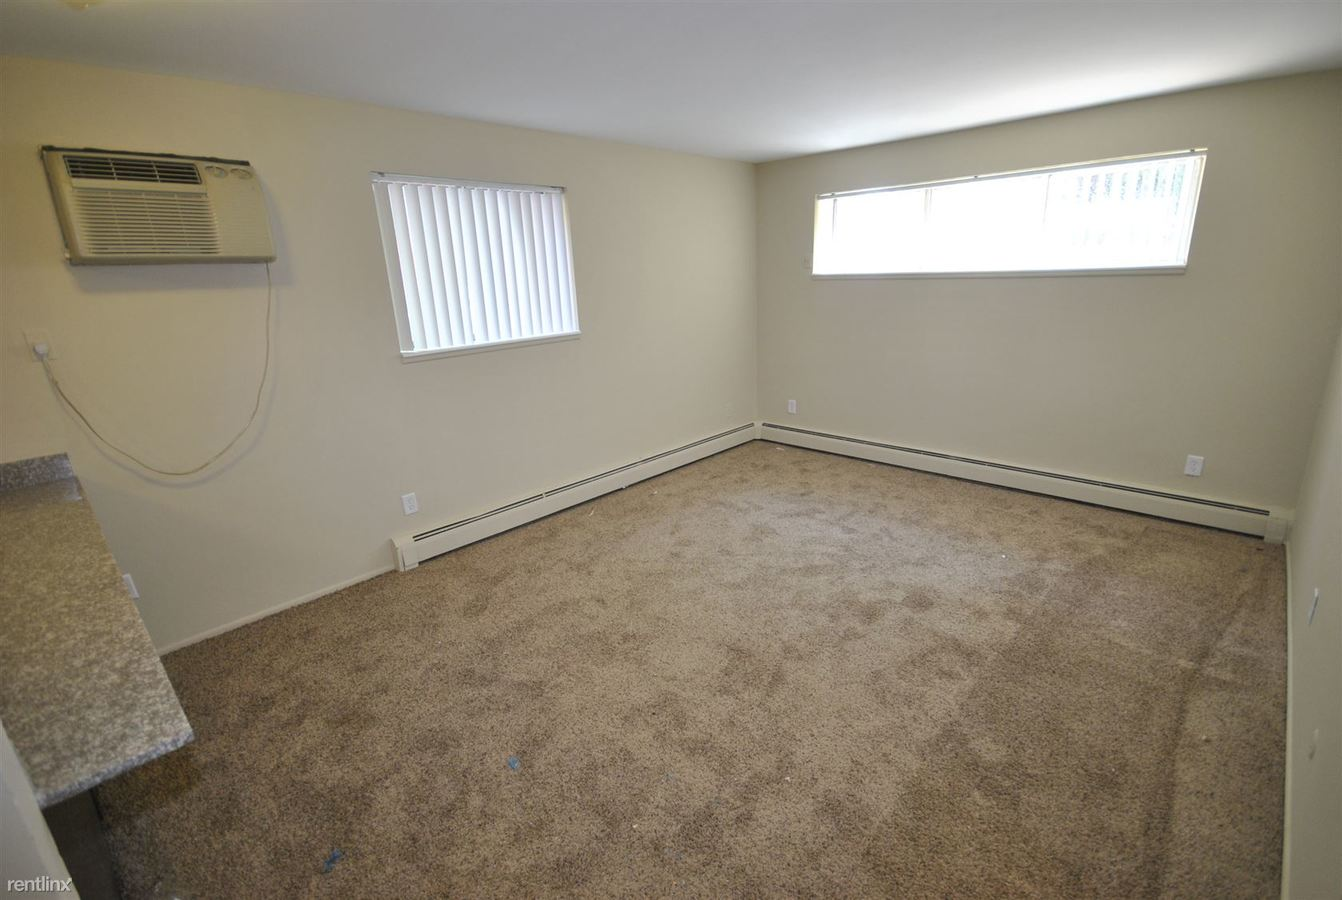 2 Bedrooms 1 Bathroom Apartment for rent at 527 S 4th Ave in Ann Arbor, MI